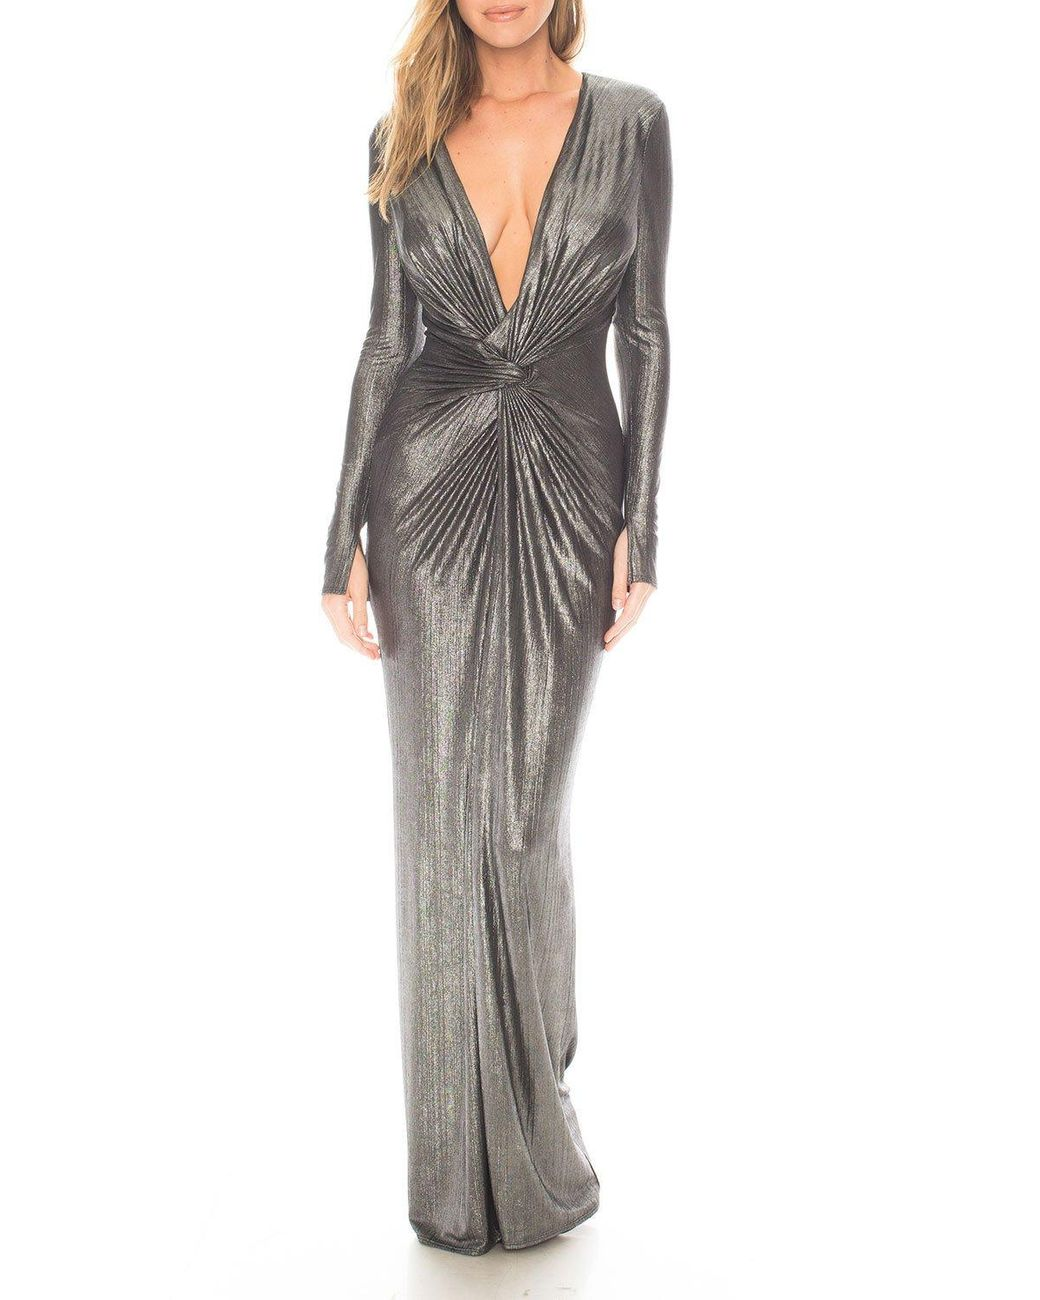 Katie May Synthetic In A Mood Draped Plisse Gown In Silver